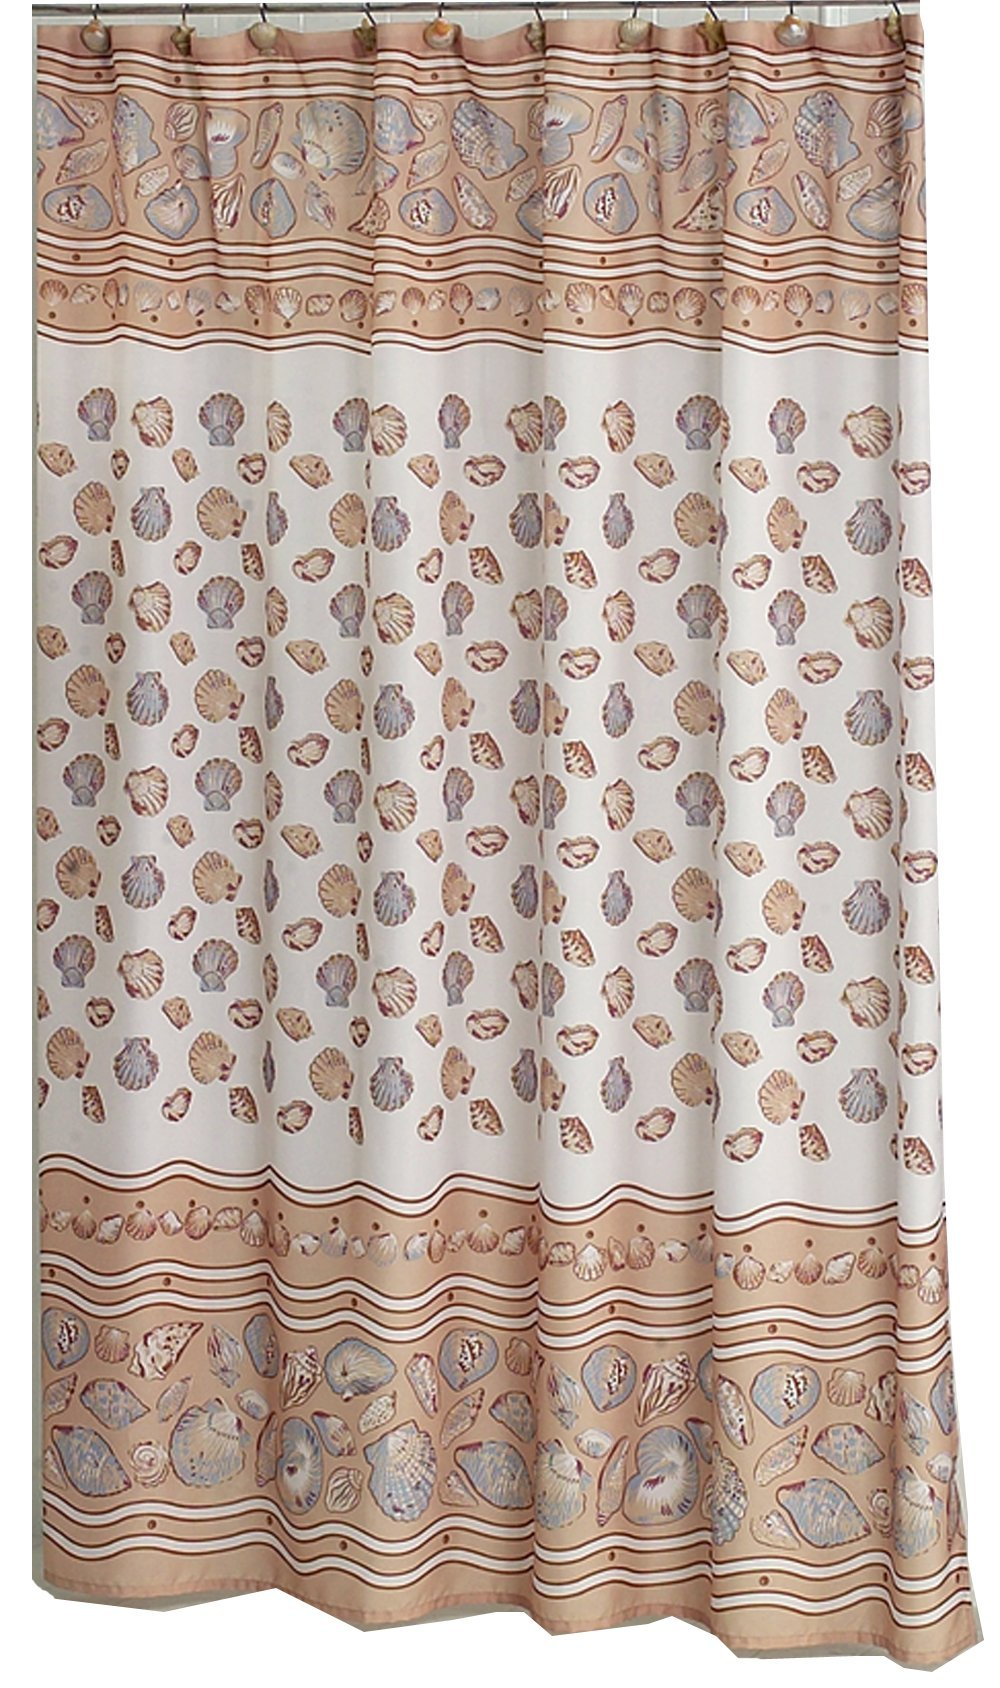 Carnation Home Fashions 70'' X 72'' Fabric Shower Curtain, South Beach Ivory